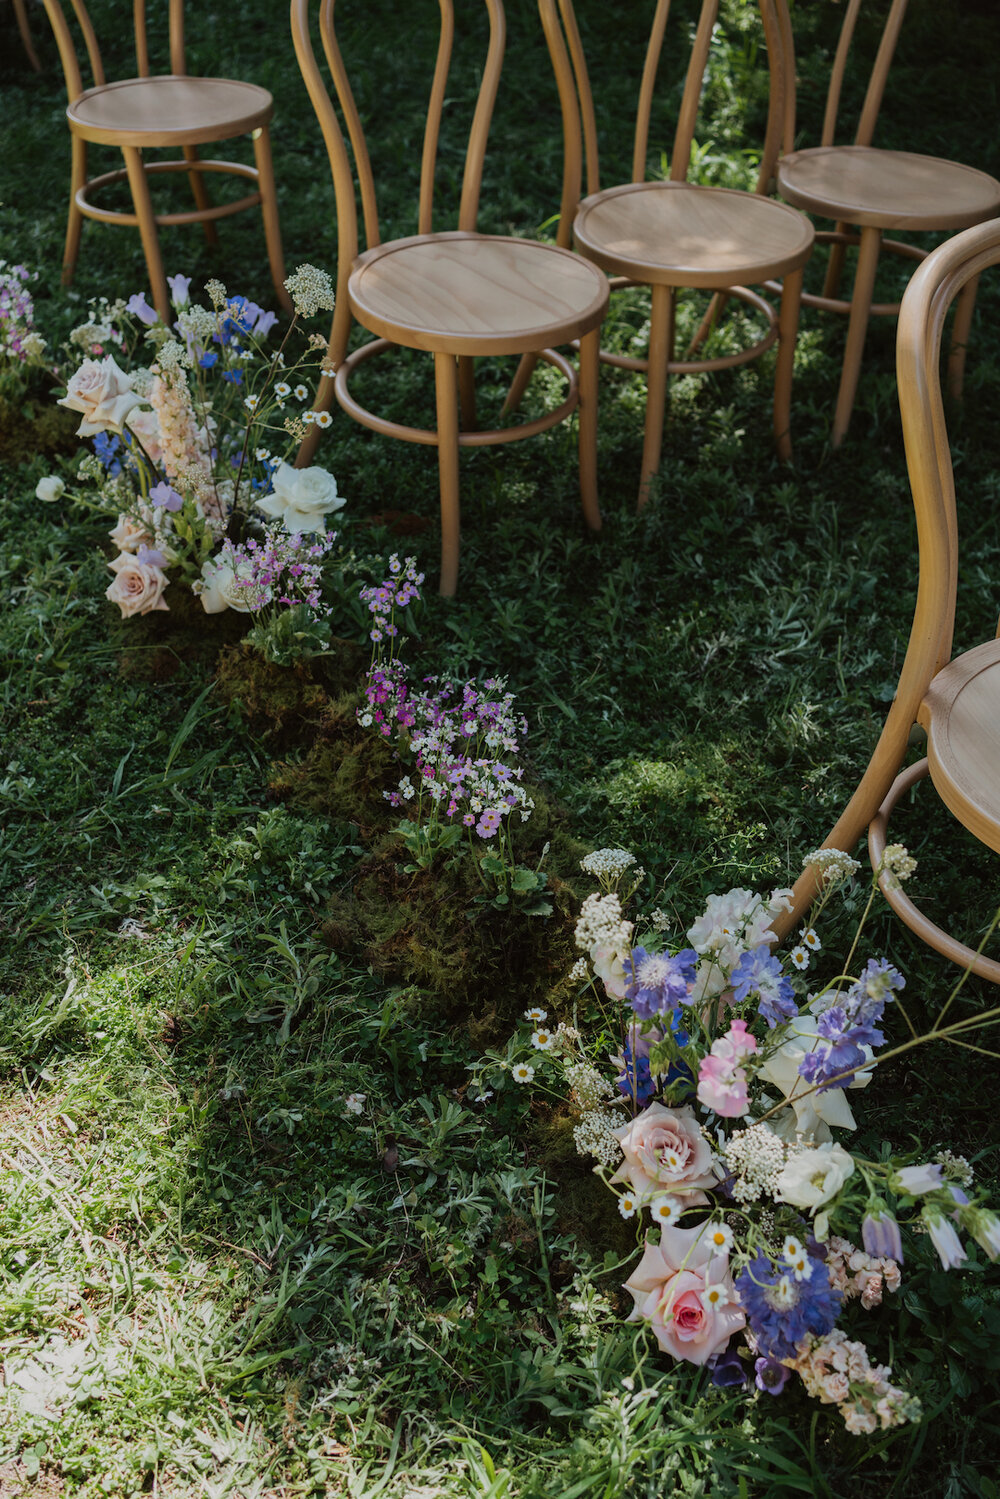 Styled Spring Elopement at Mona Farm featuring the Renee Grace Bridal 'Alana' gowns